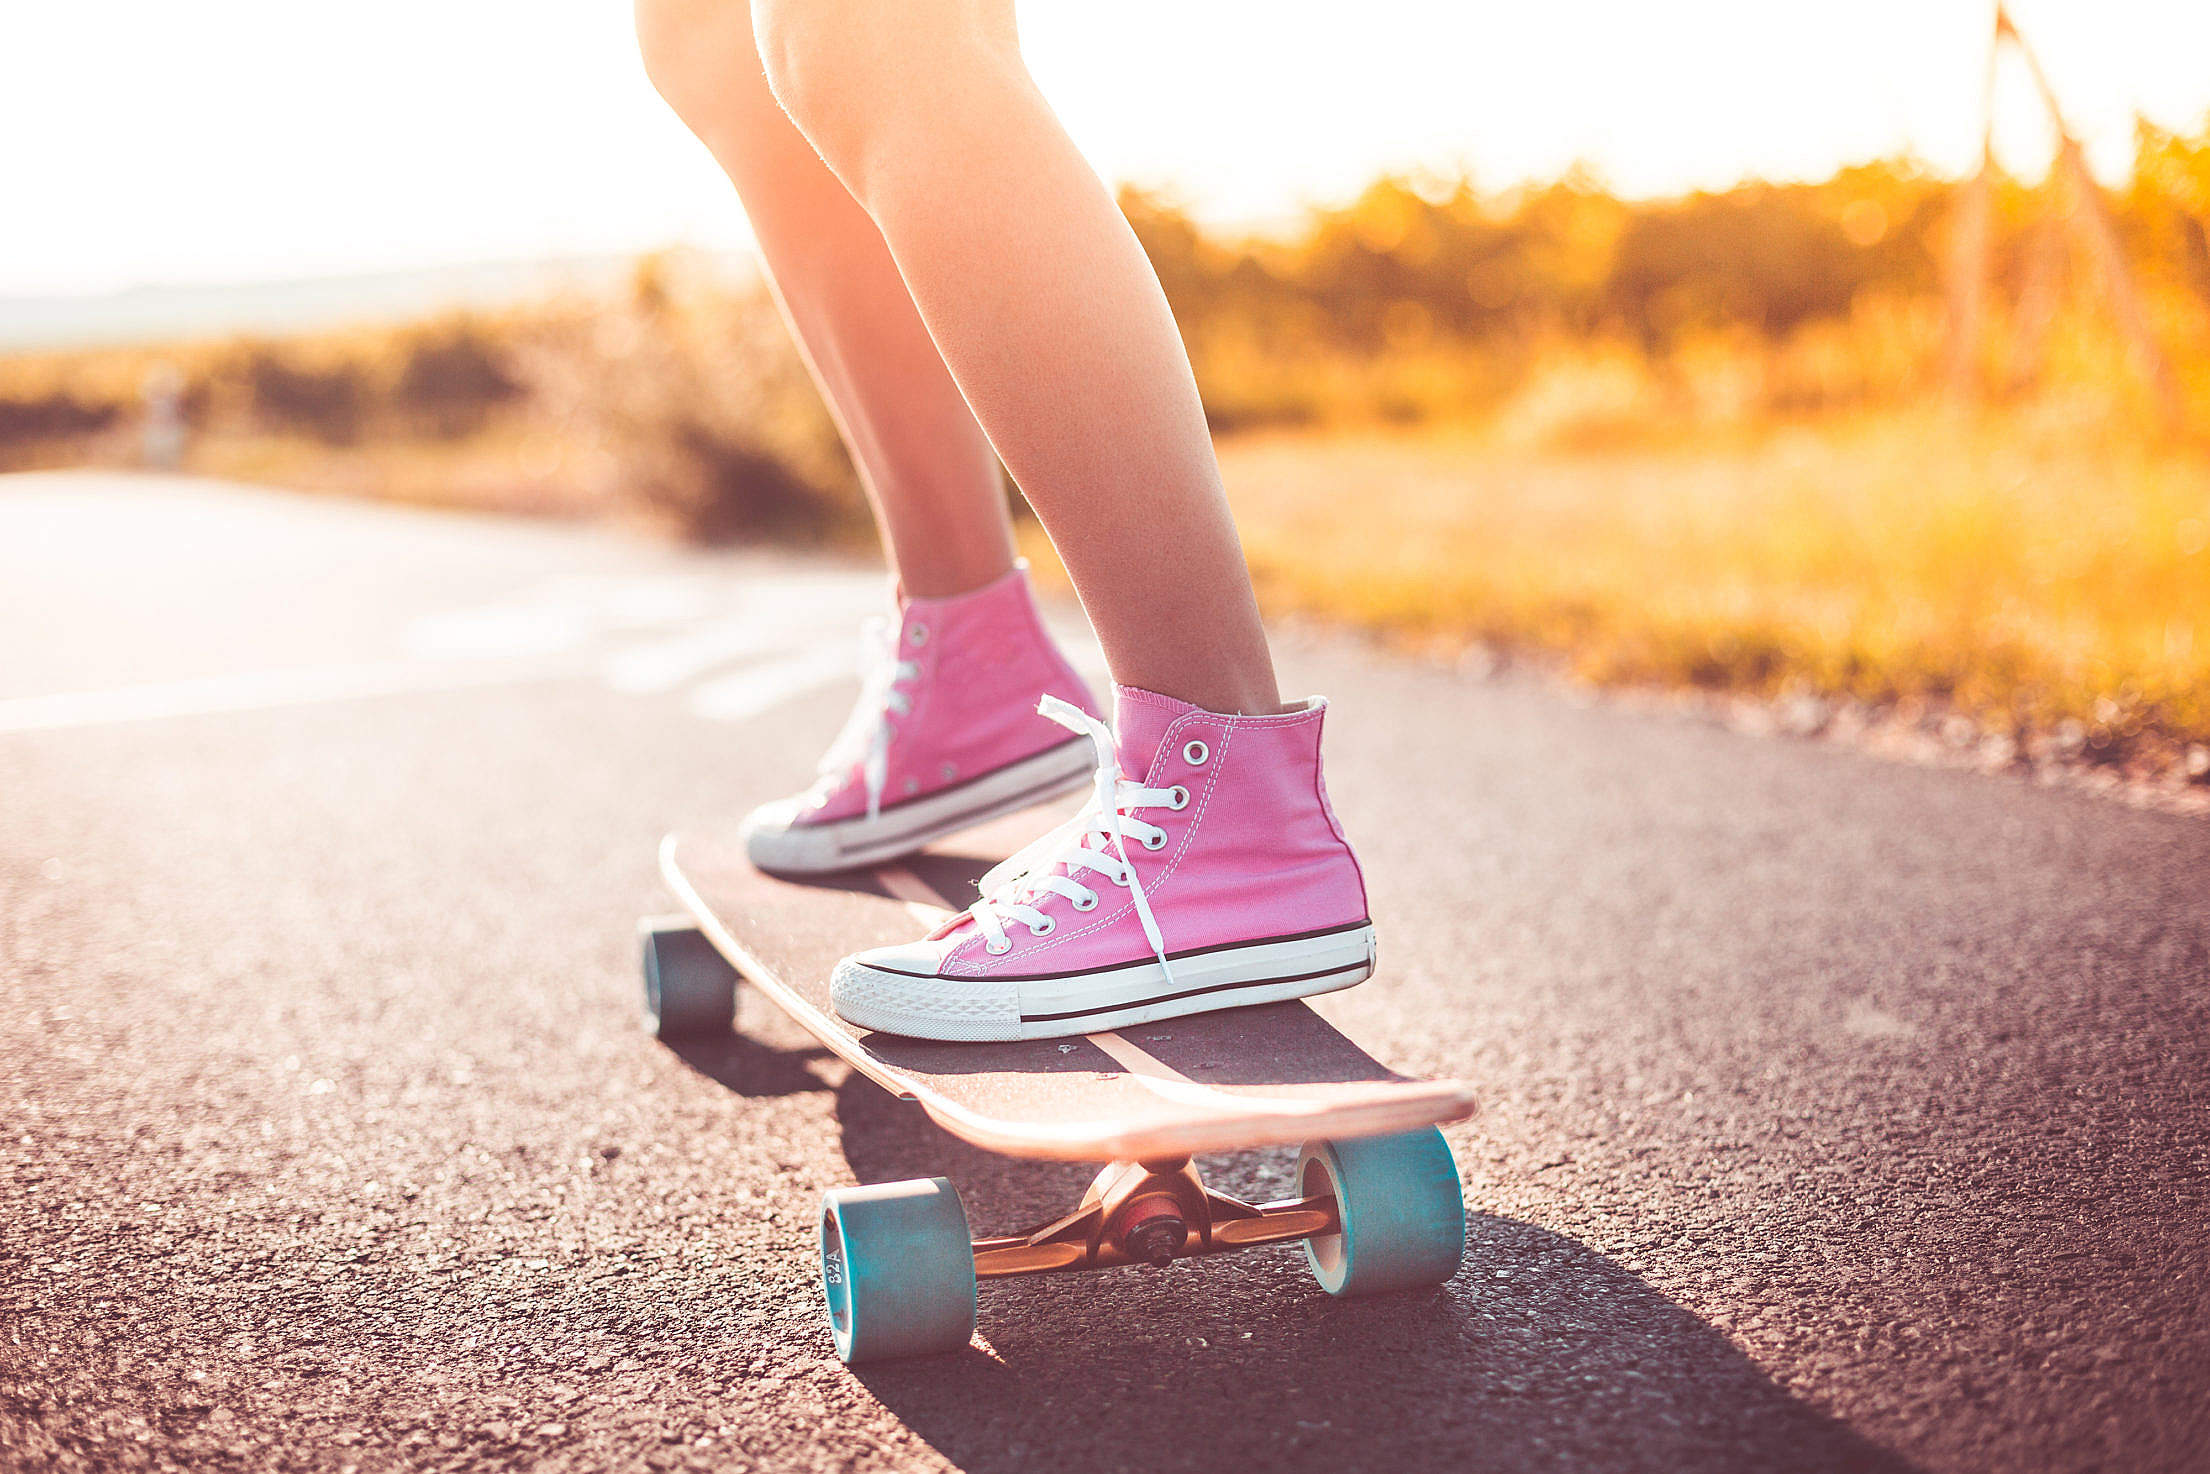 Young Girl with Pink Shoes Riding a Longboard Free Stock Photo